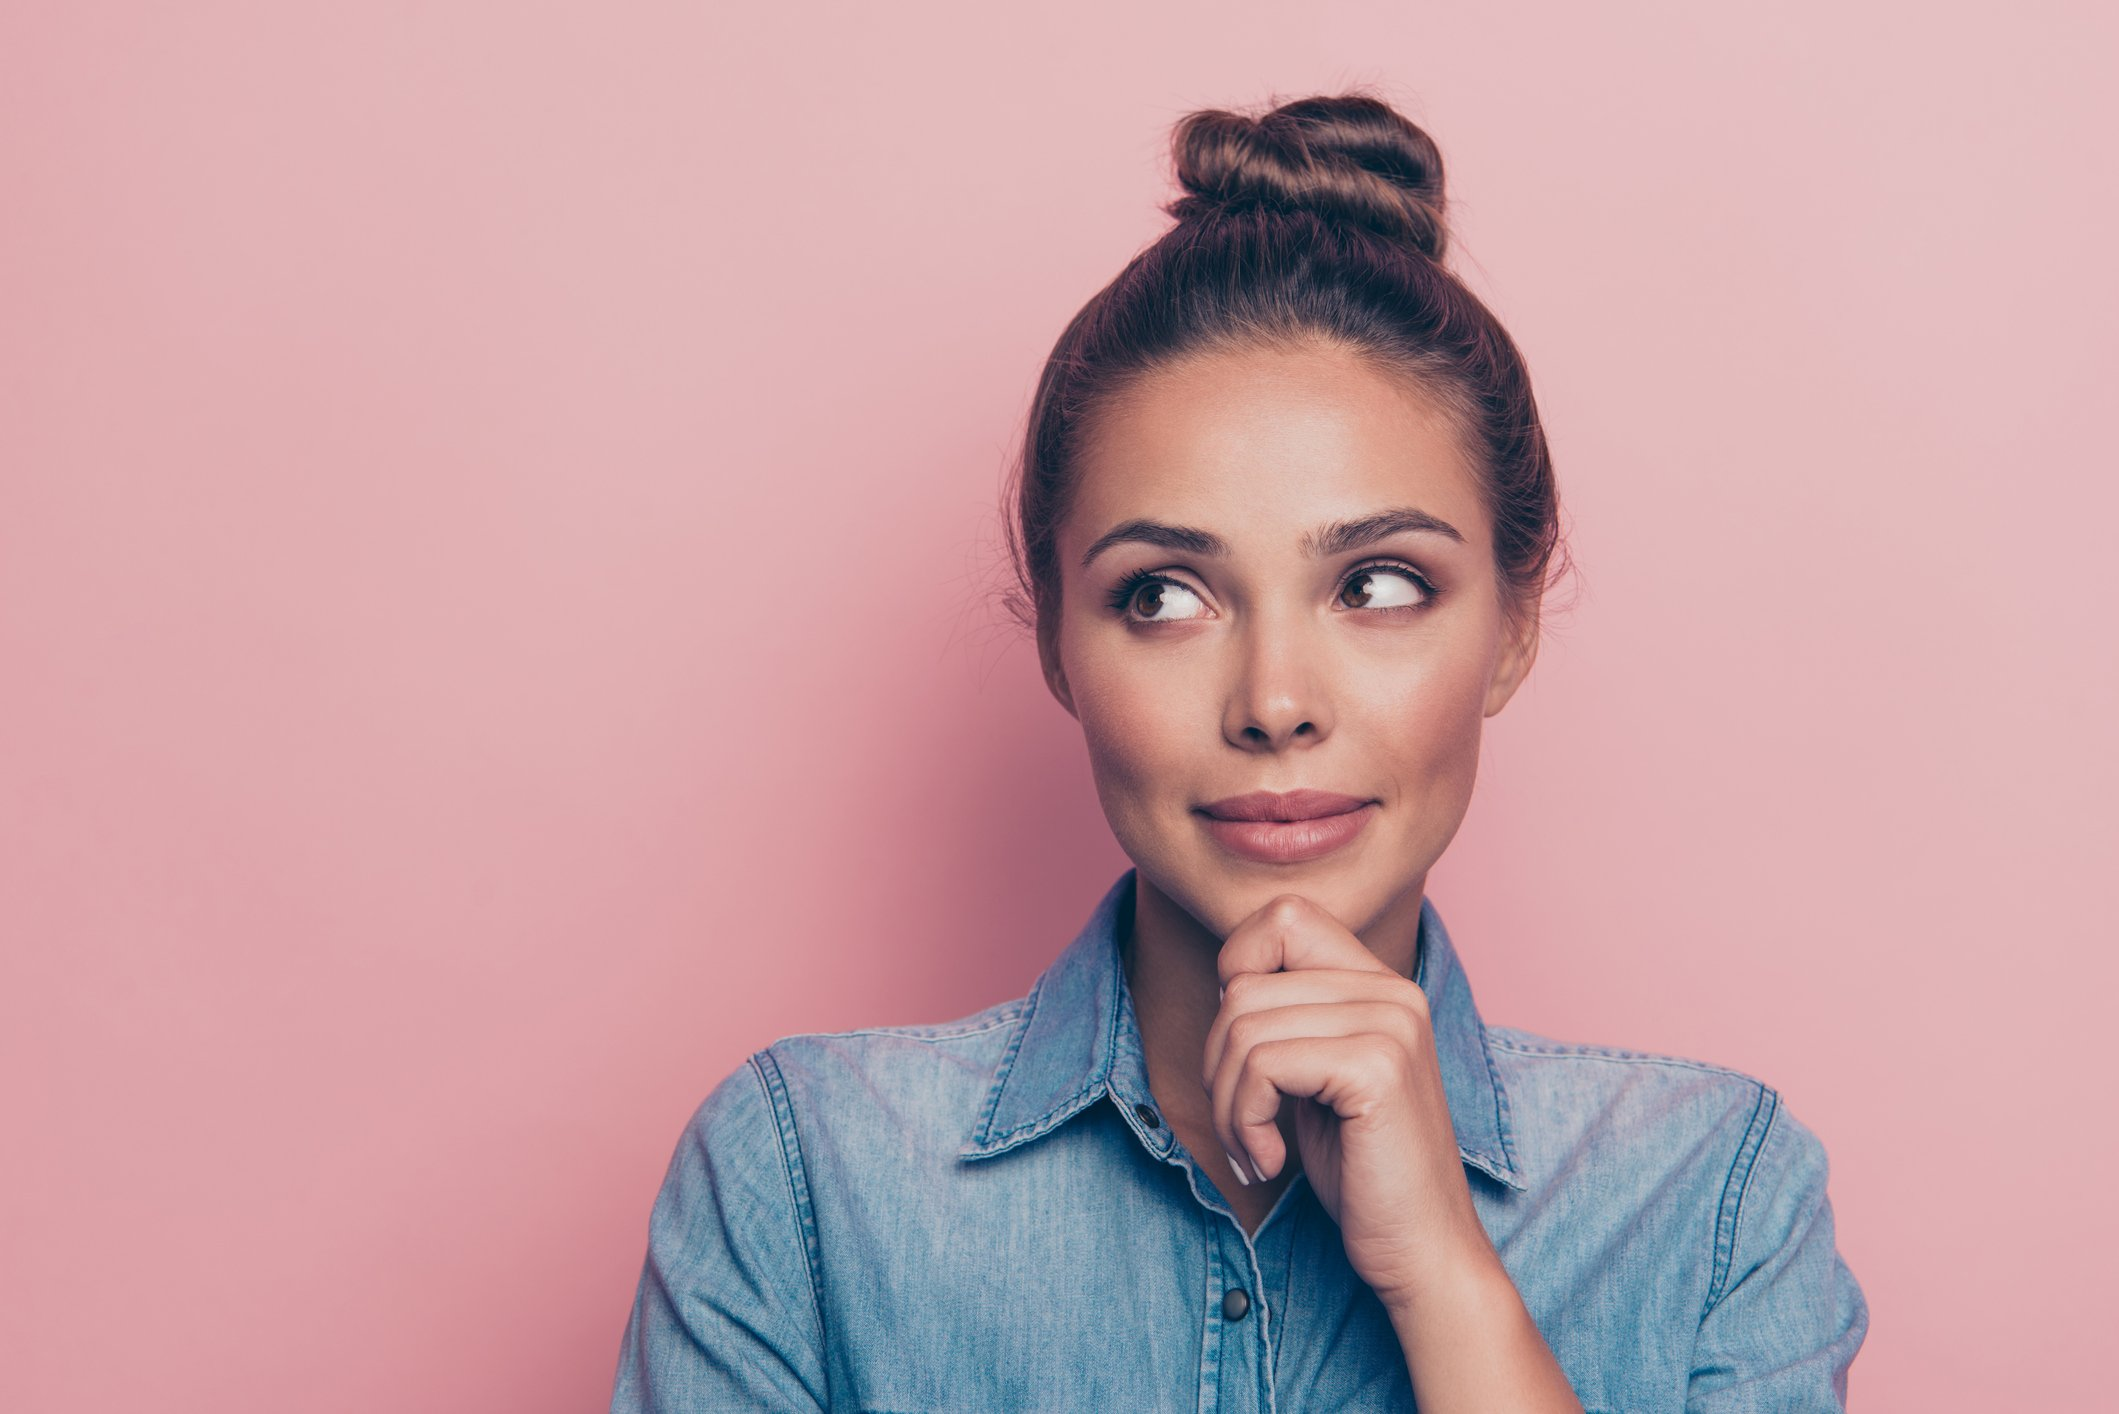 Portrait of curious woman on pink background